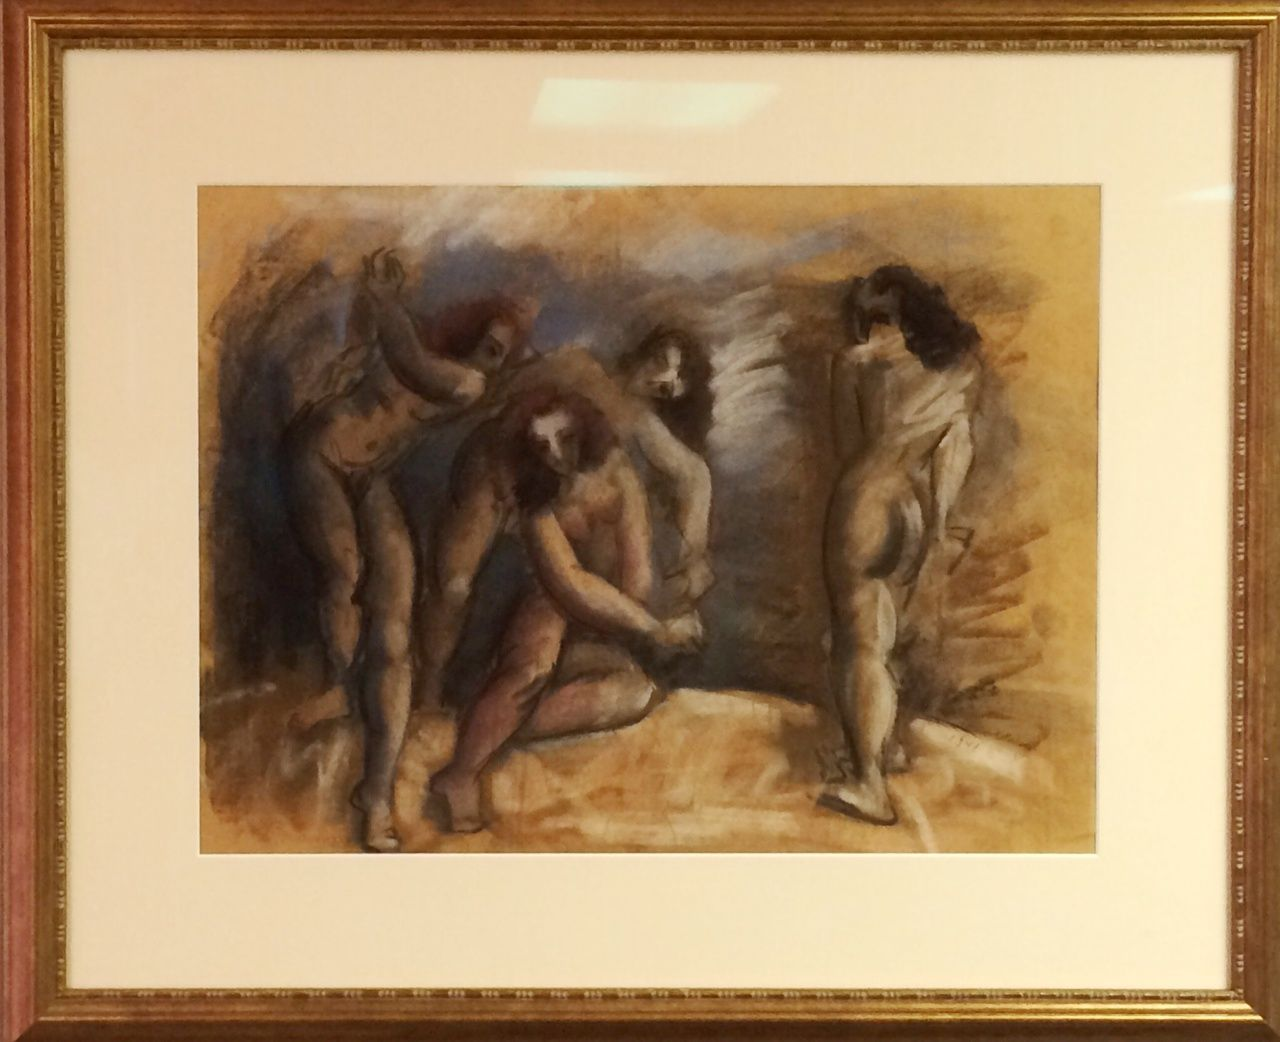 Original Work on Paper, Four Female Nudes, by Hans Gustav Burkhardt (1904-1994). Available for purchase at http://treasuredestates.com/showroom/product/146-work-on-paper-four-female-nudes-by-hans-gustav-burkhardt